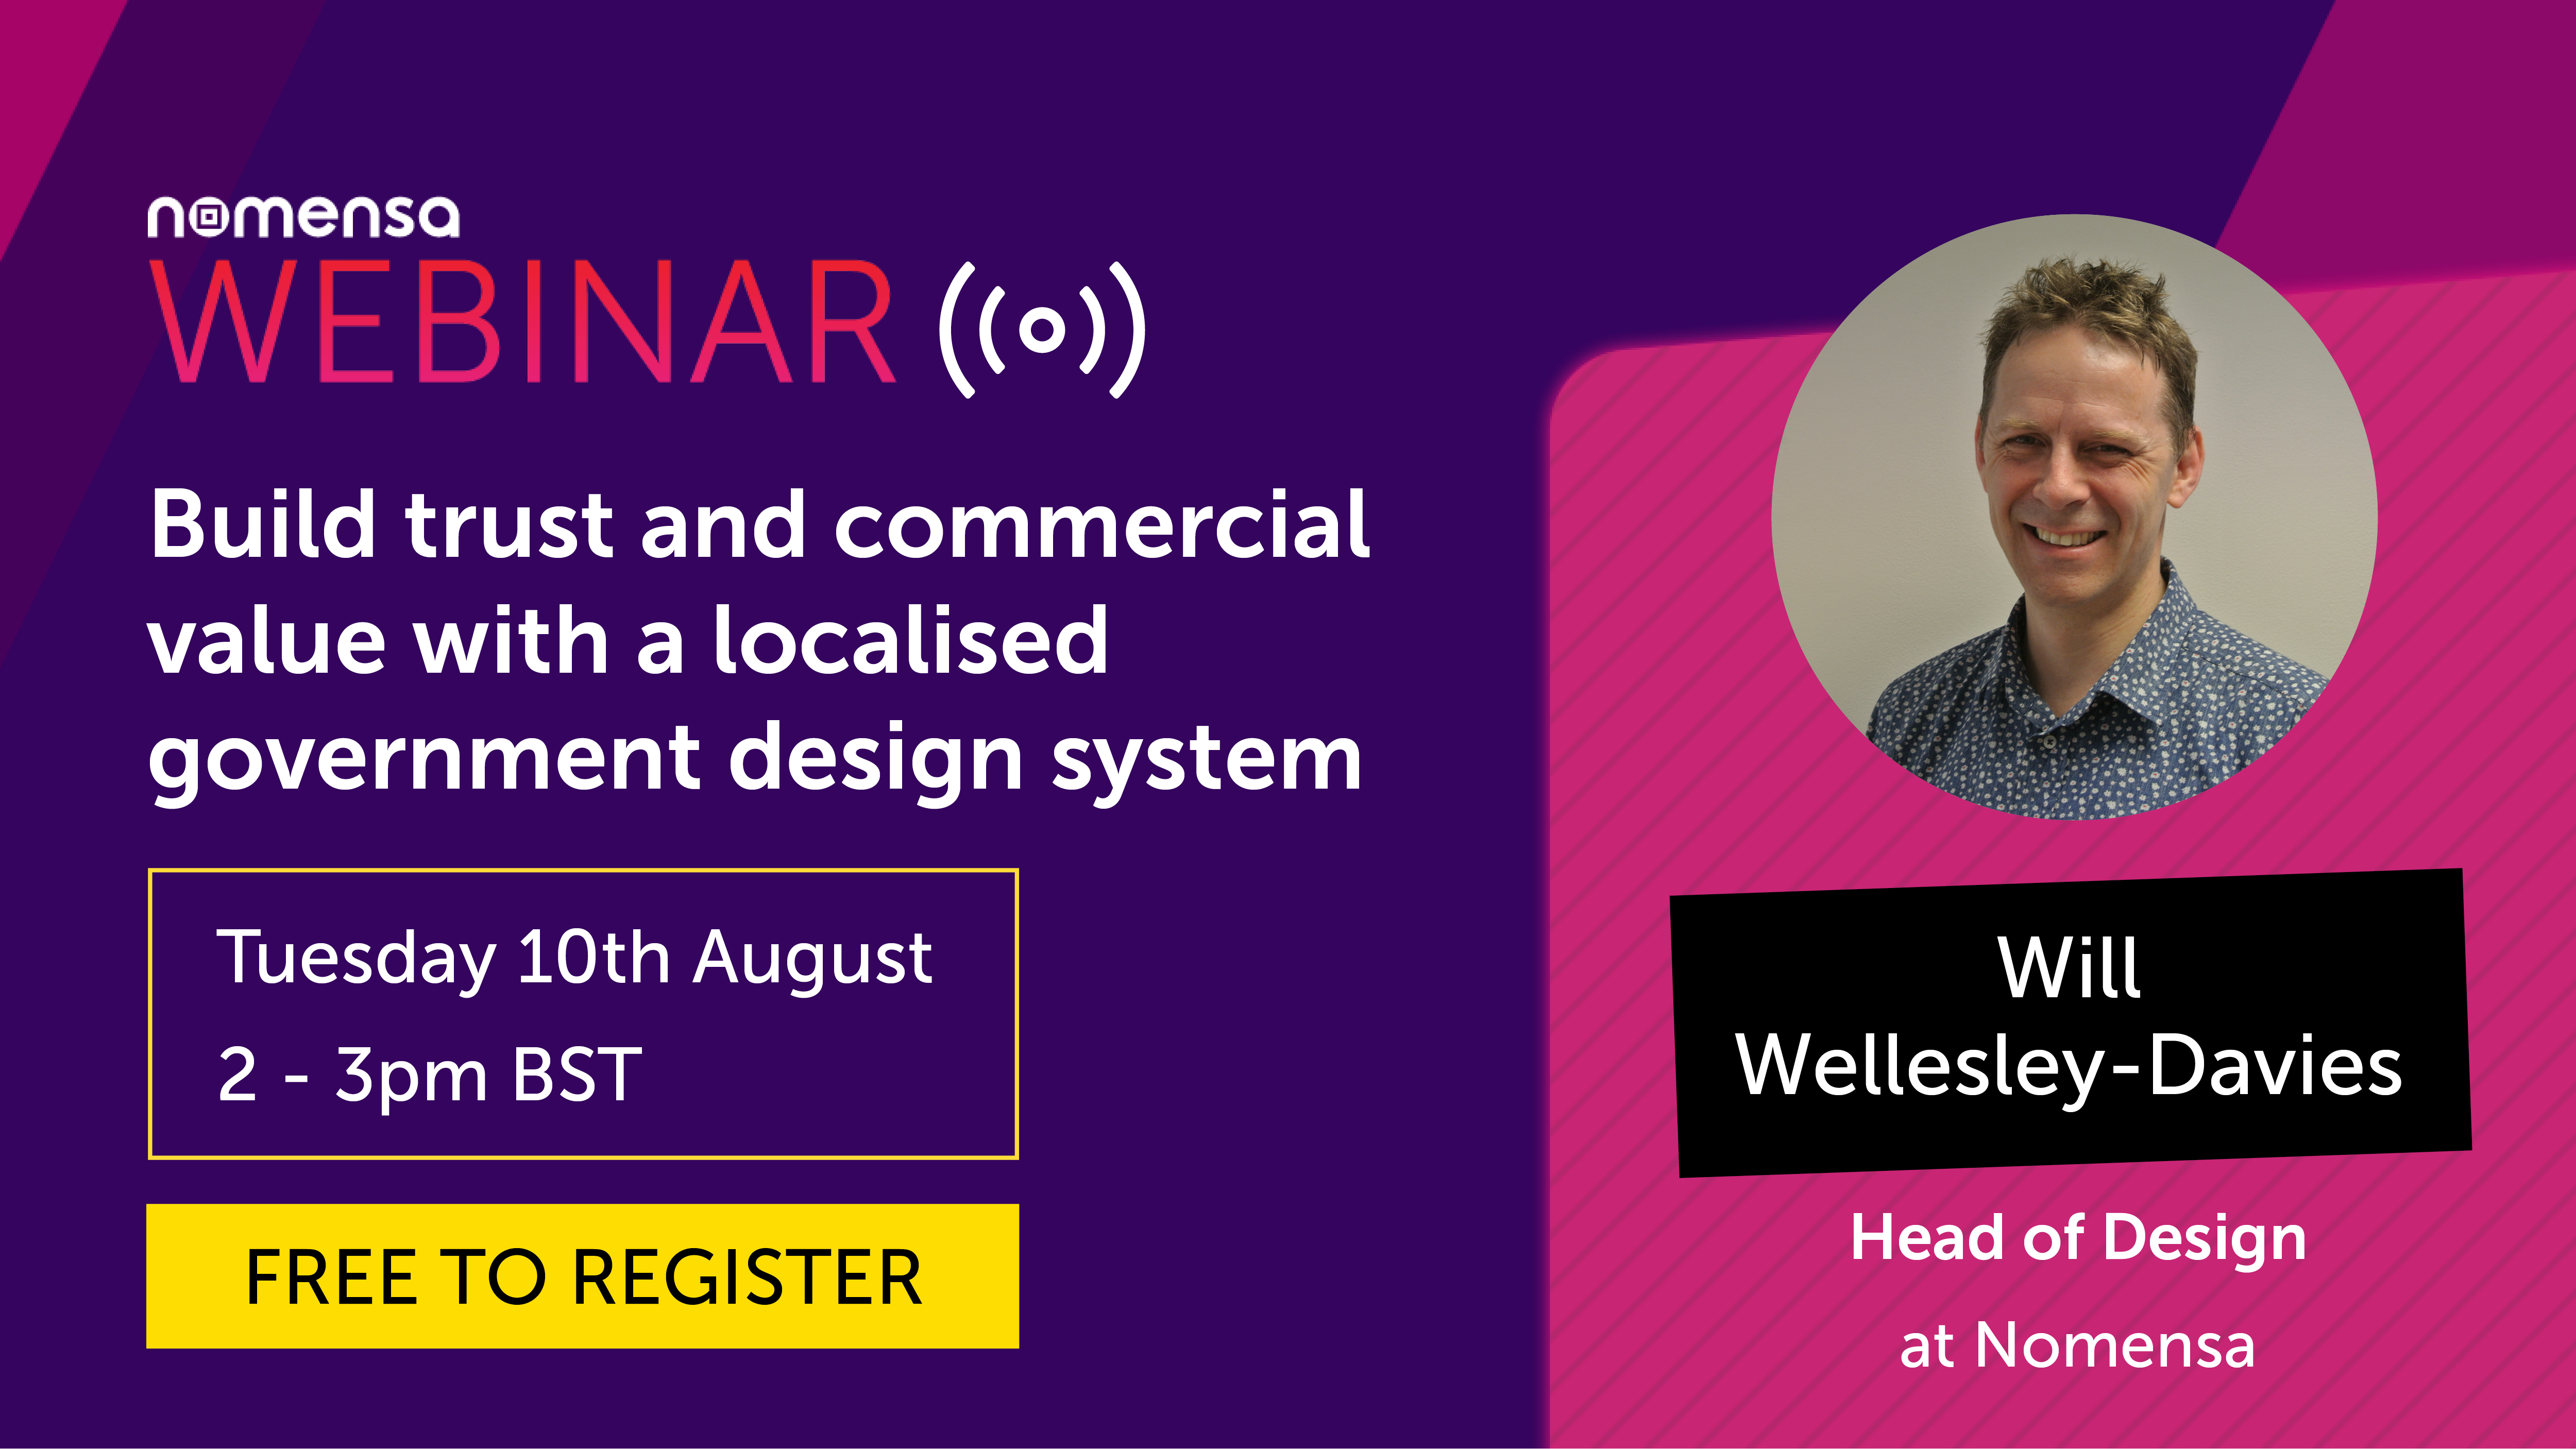 Register for our free webinar:  Build customer trust and commercial opportunity with a localised government design system with Head of Design Will Wellesley-Davies. 2 3pm BST on Tuesday 10th August